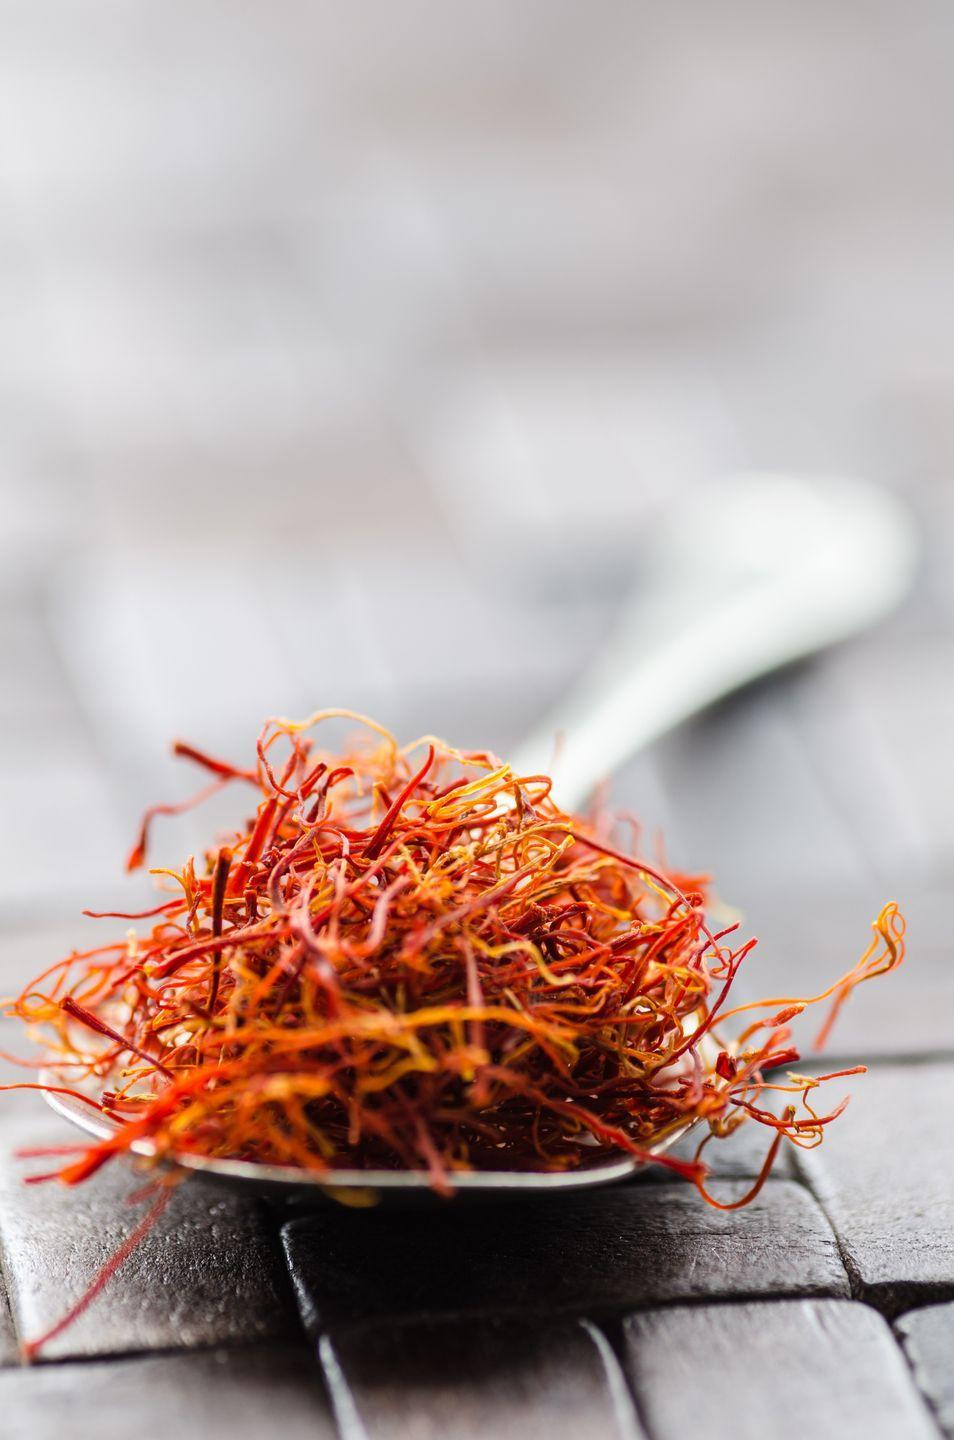 """<p>""""Studies show that the equivalent of 15 milligrams—or about one-fifth of a teaspoon of threads—of saffron twice daily can decrease <strong>PMS symptoms, including anxiety, irritability, depression, mood swings, and insomni</strong>a. Add saffron to your food, take it in capsule form, or brew a cup of tea."""" (People with bipolar disorder shouldn't use saffron without a doctor's supervision.) </p><p><em>—Skye McKennon, PharmD, clinical assistant professor, University of Washington and Washington State University</em></p>"""